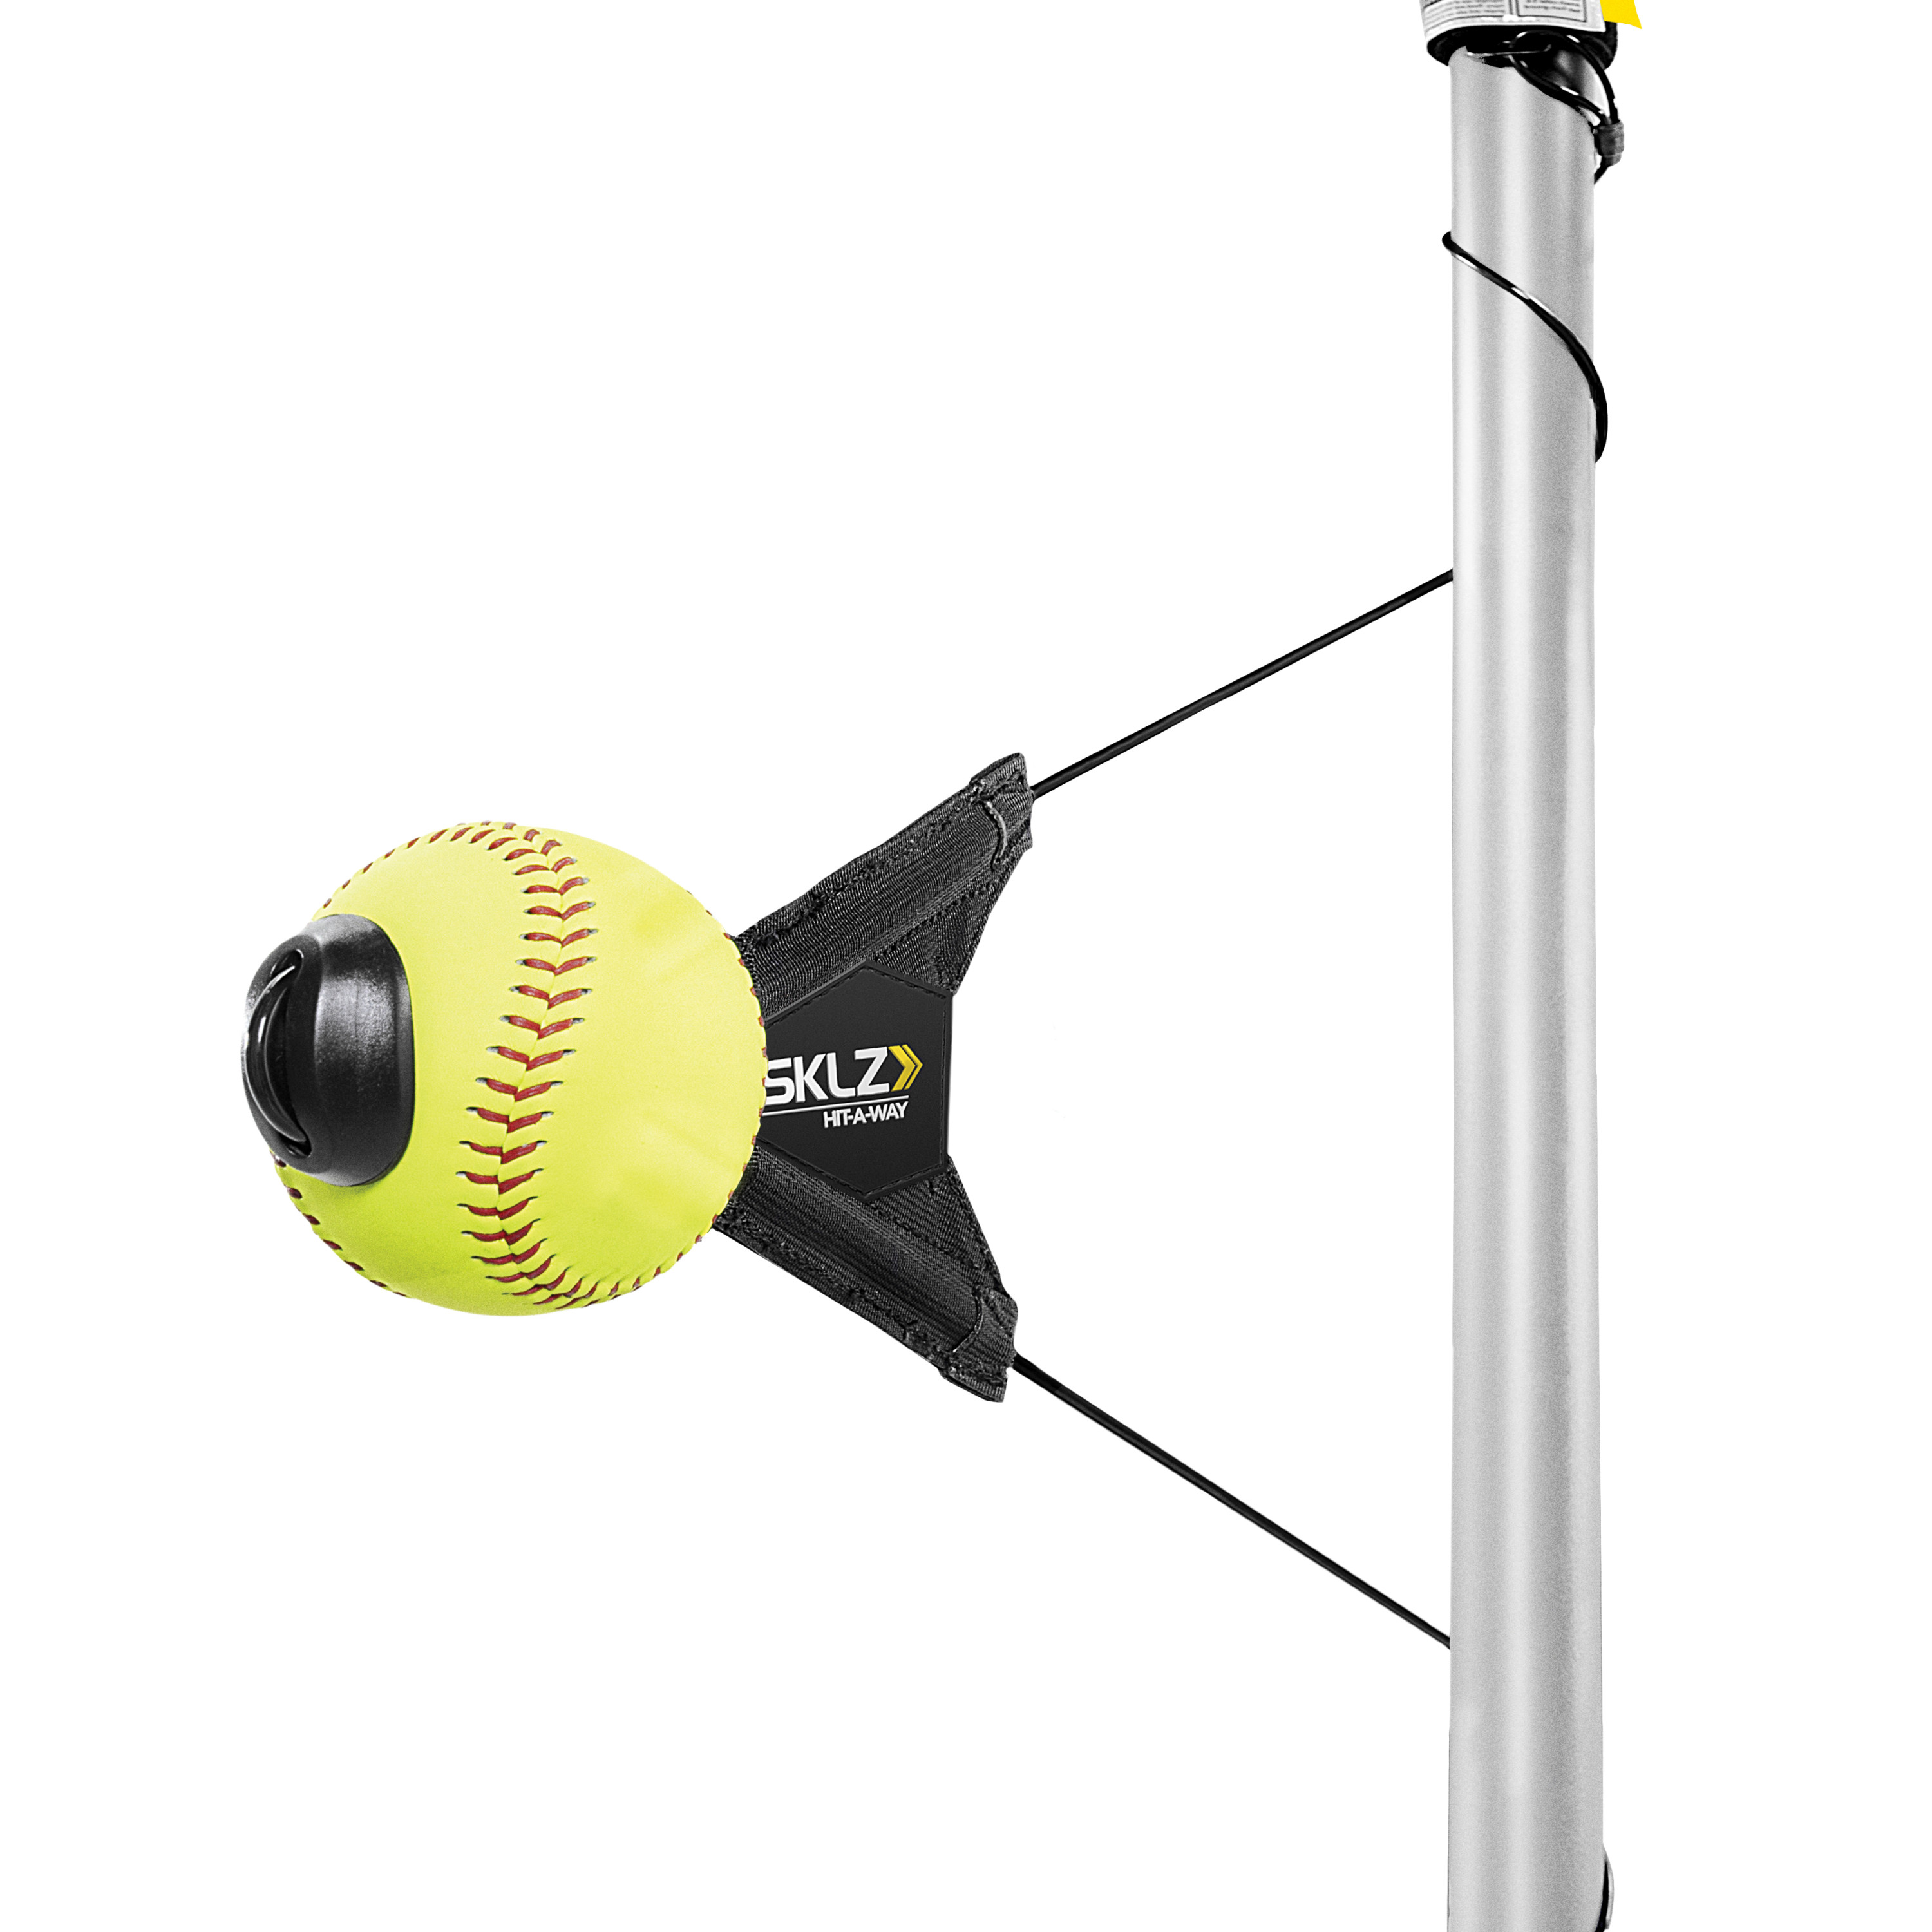 Sklz Hit A Way Portable Swing Trainer For Softball